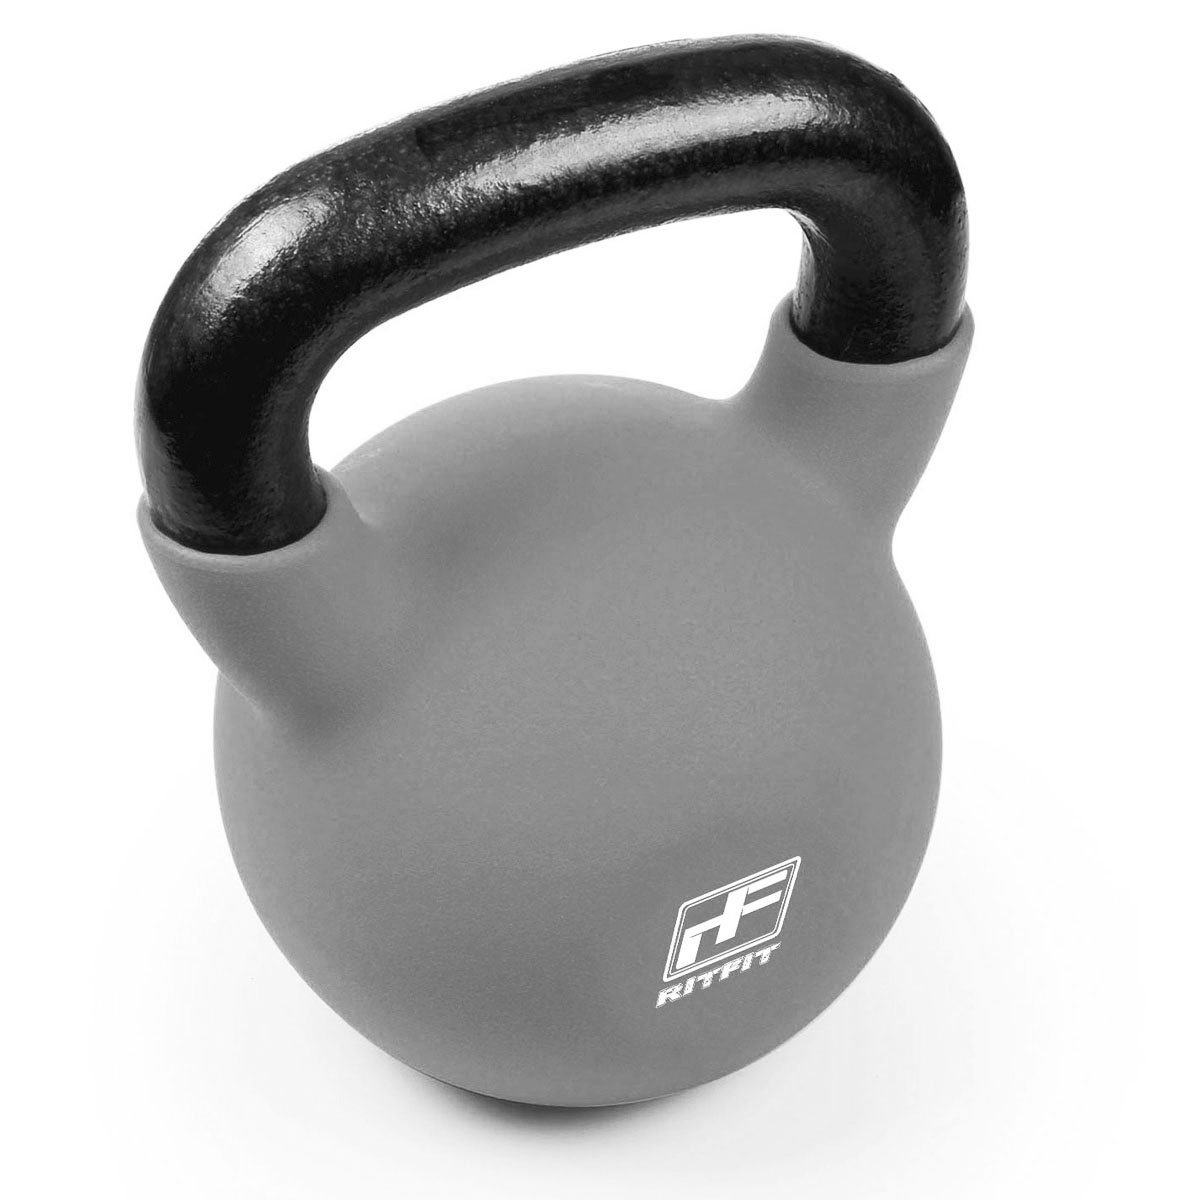 Weight Loss /& Strength Training RitFit Neoprene Coated Solid Cast Iron Kettlebell 5//10//15//20//25//30//35//40//45//50 LB Cross-Training Great for Full Body Workout